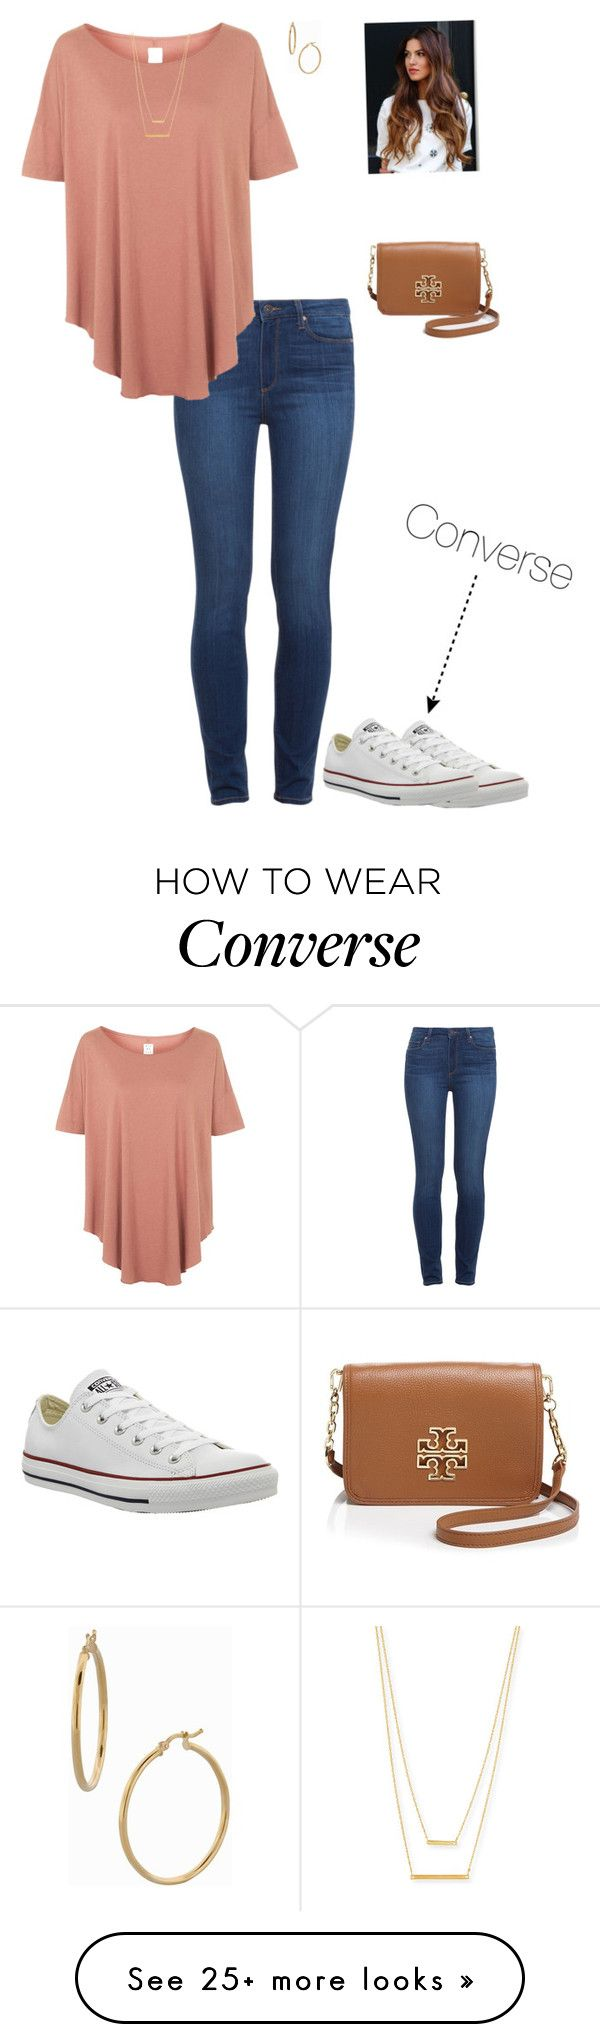 """C Is For Converse"" by preppyygirll on Polyvore featuring Converse, Paige Denim, Topshop, Jennifer Zeuner, Tory Burch and Bony Levy"